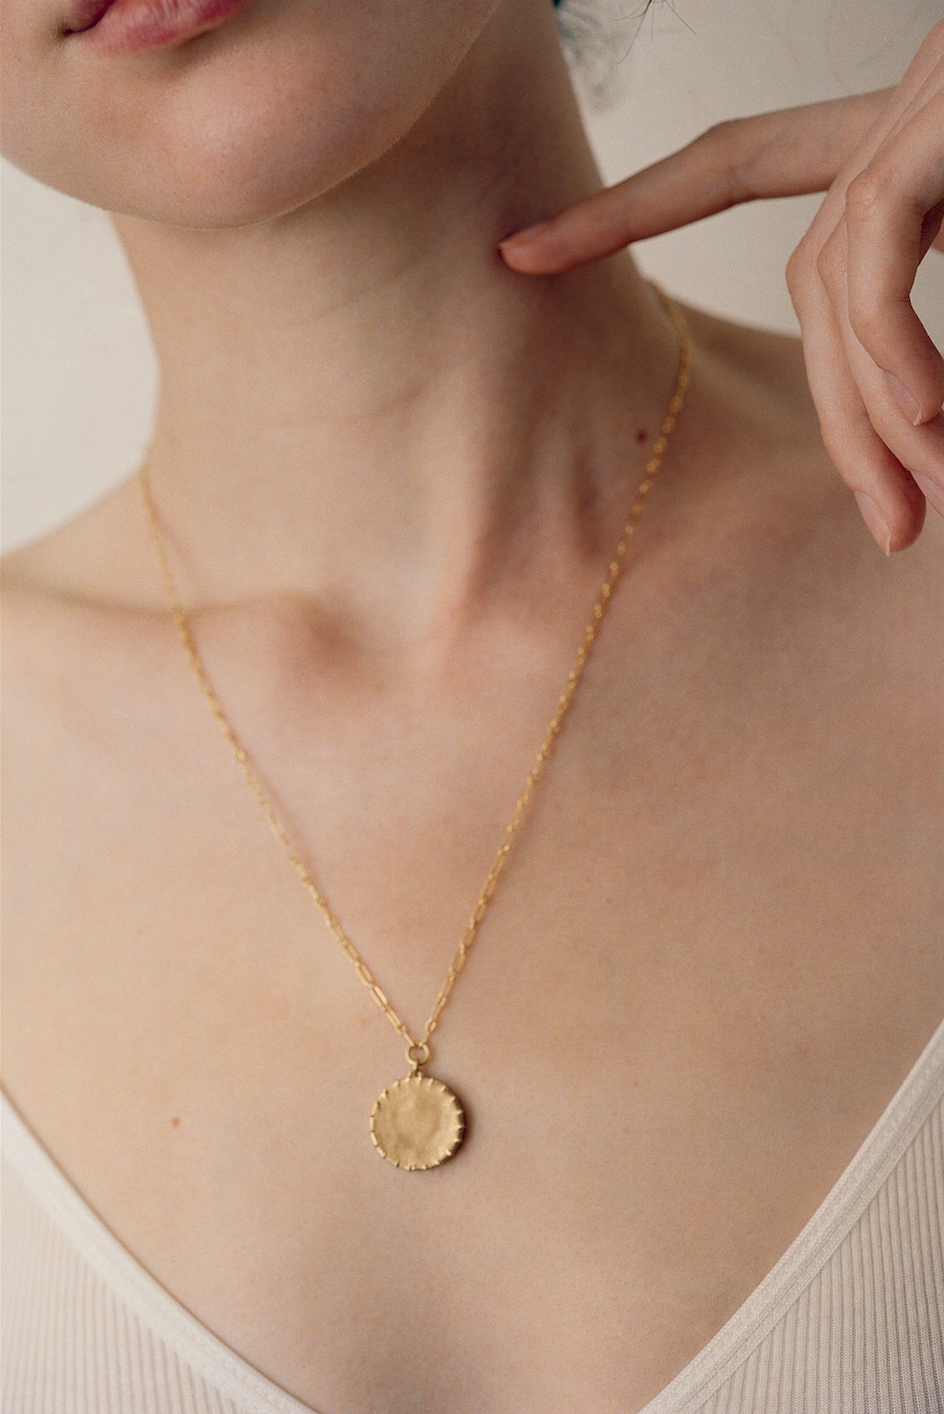 Brass Pendant With Textural Detail On 14k Gold Plated Brass Chain Pendant Measures 18mm Across Chain Available In Necklace Jewelry Photoshoot Charm Necklace